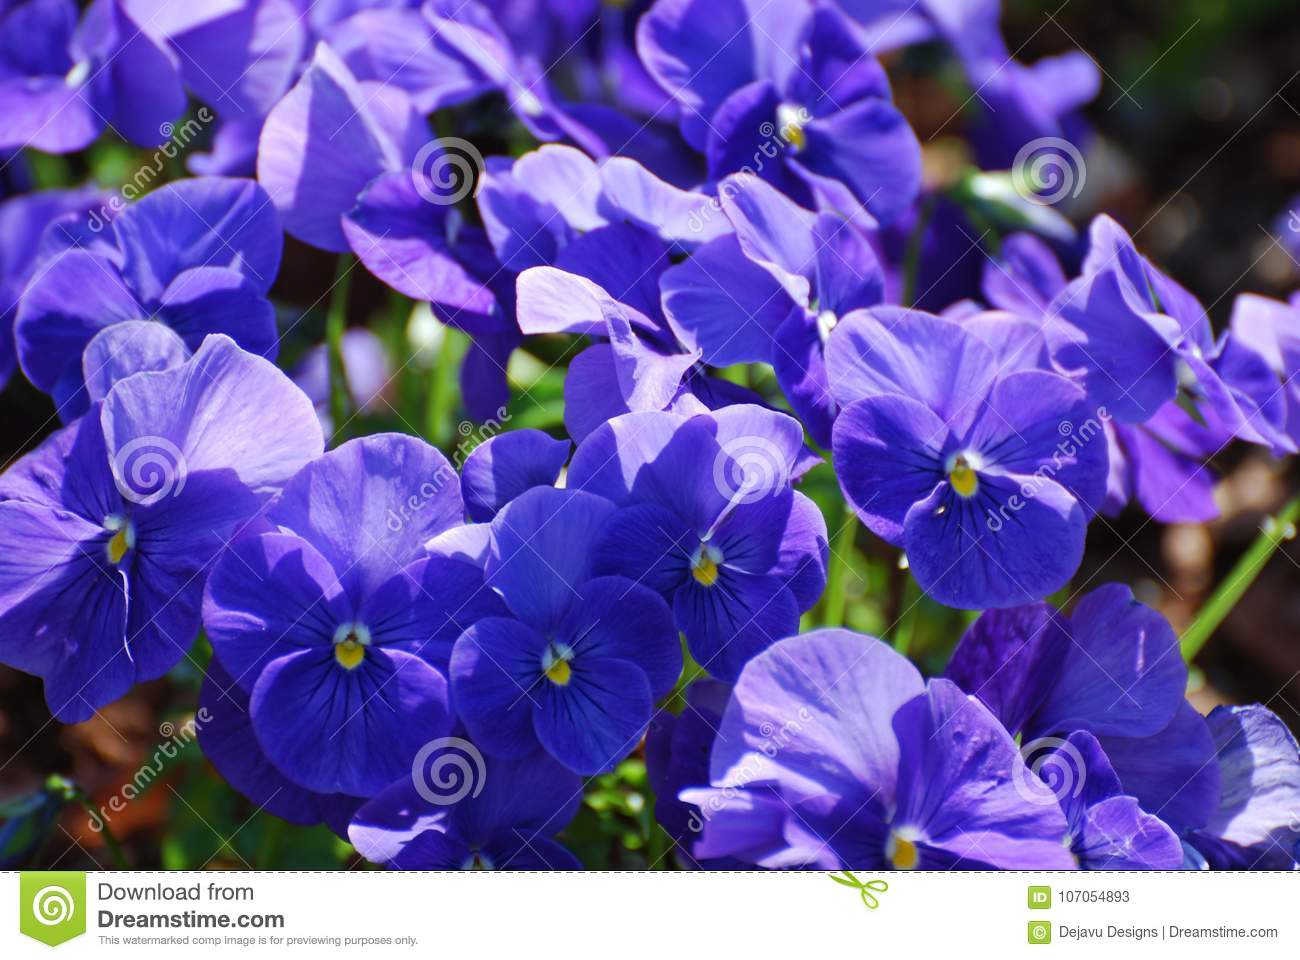 Blue flowering johnny jump ups in a garden stock image image of pretty blue flowering johnny jump up flowers in a garden mightylinksfo